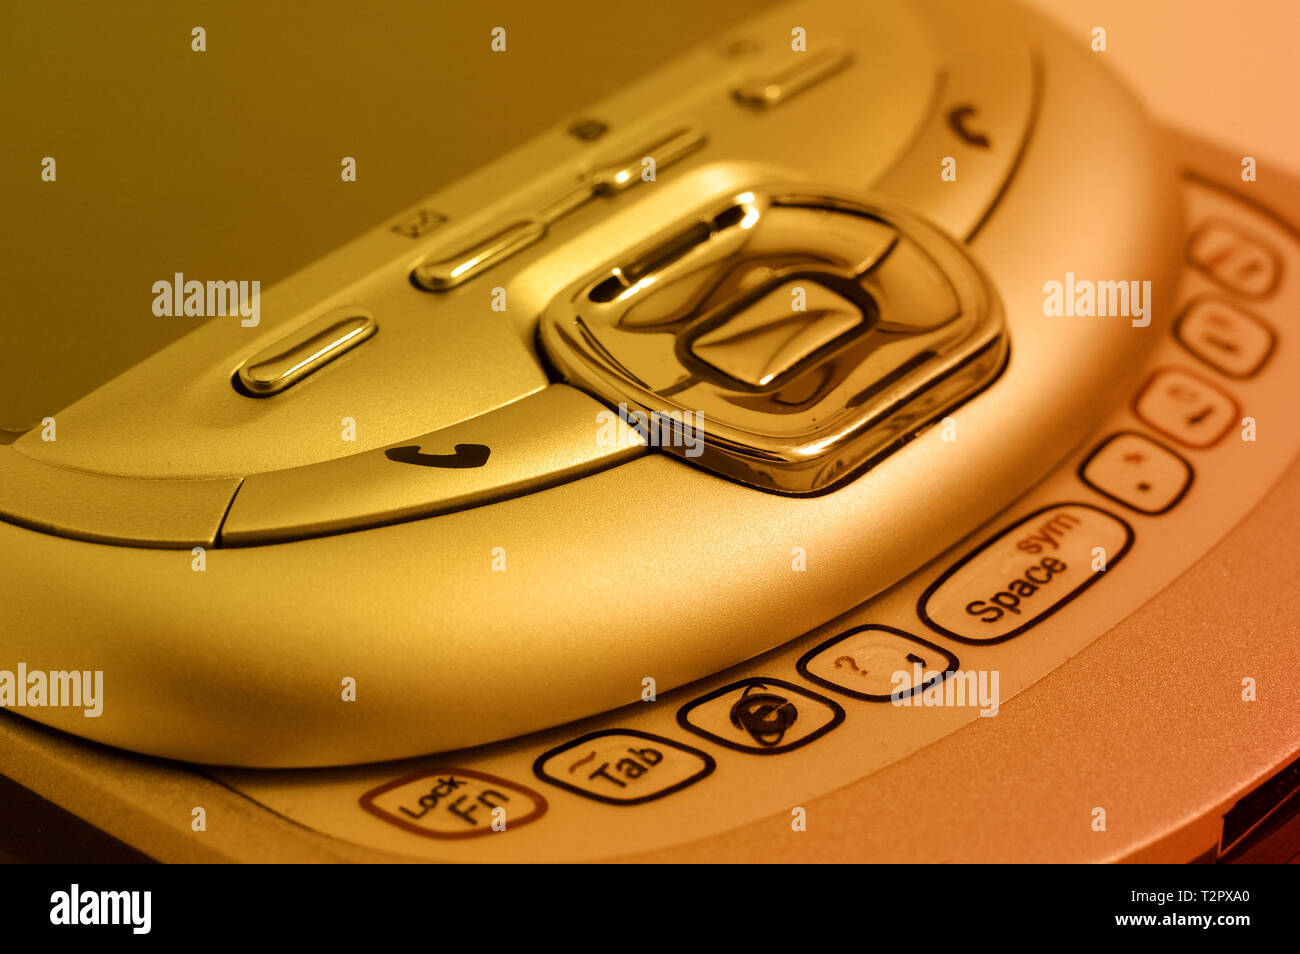 PDA. Old type mobile phone. Picture in orange tint - Stock Image